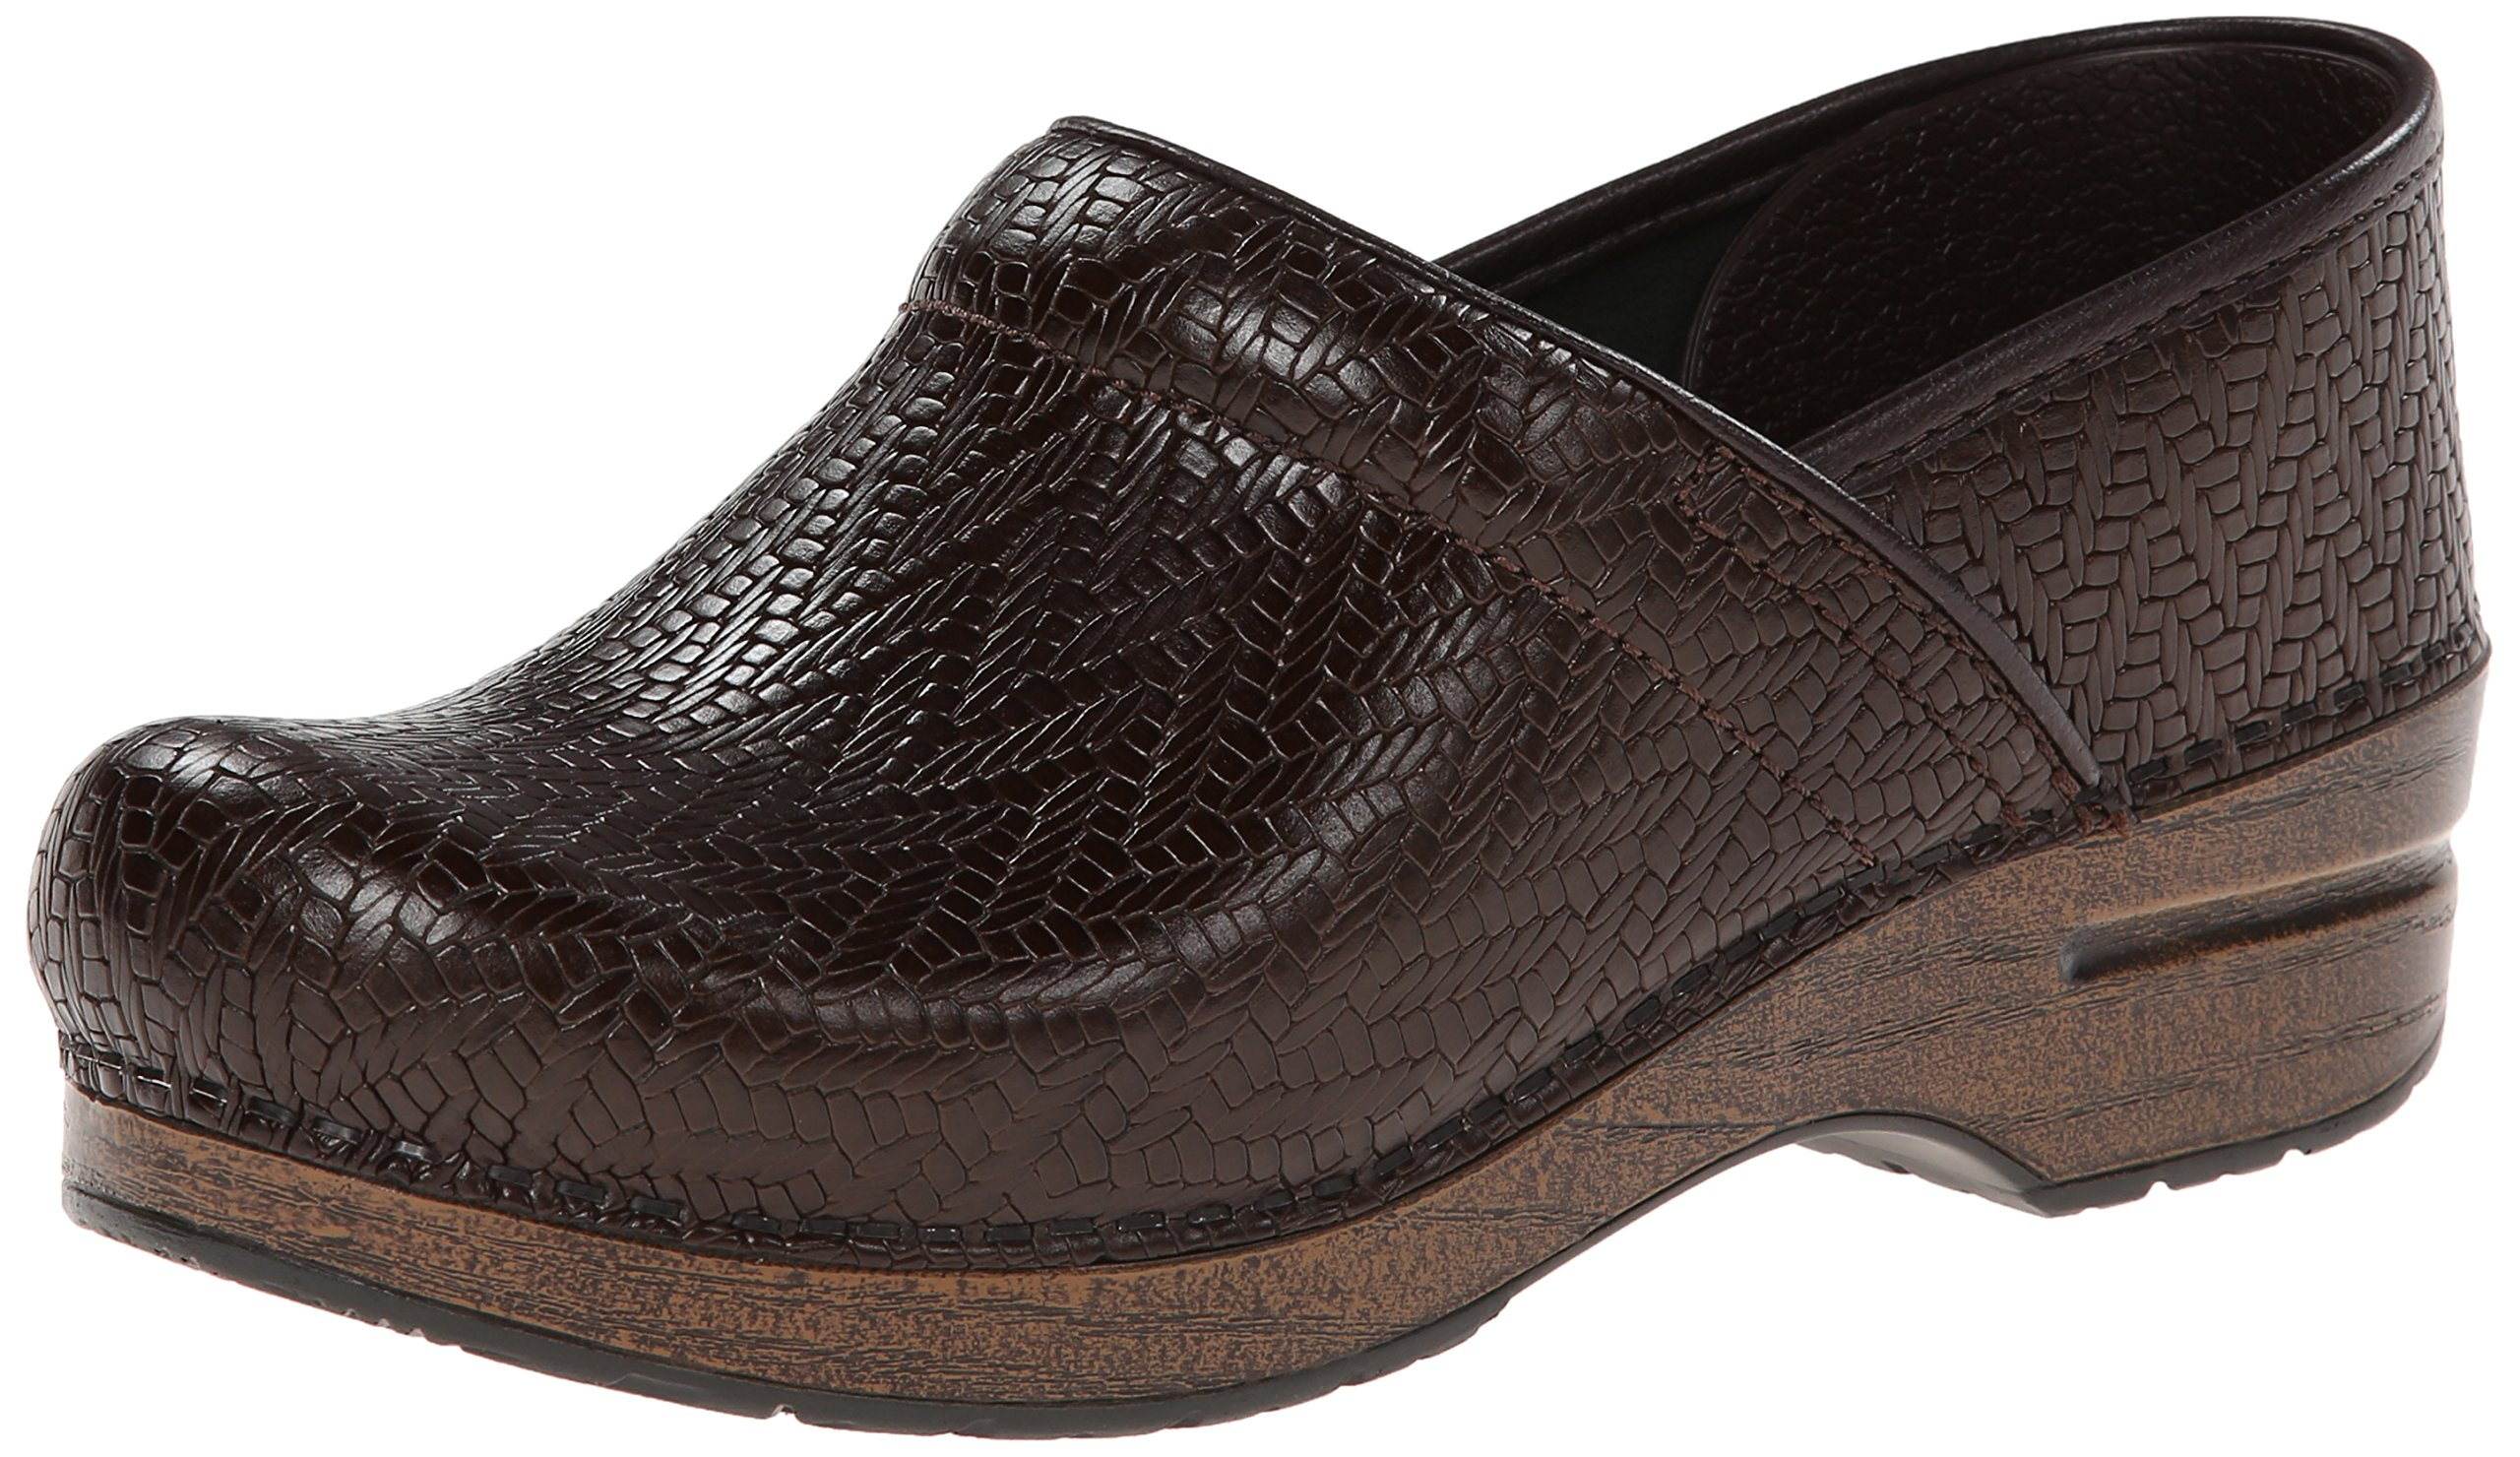 Dansko Women's Professional Mule, Brown Woven, 37 EU/6.5-7 M US